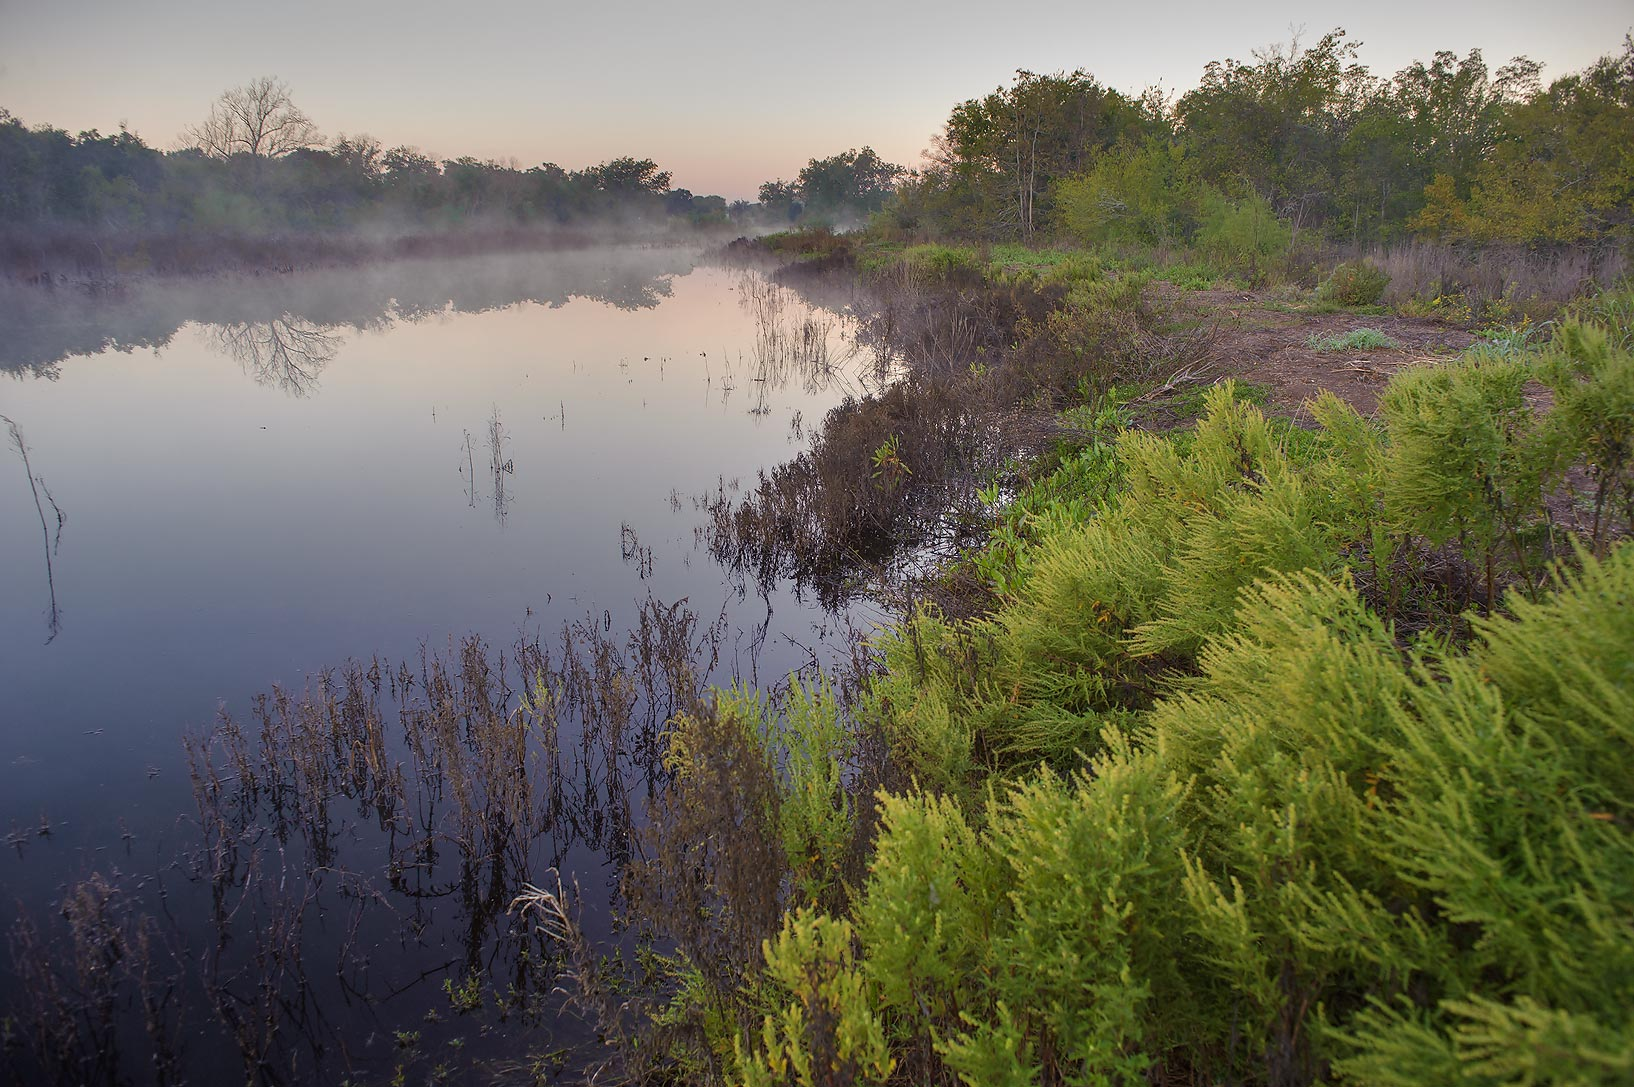 A pond in mist in Washington-on-the-Brazos State Historic Site. Washington, Texas